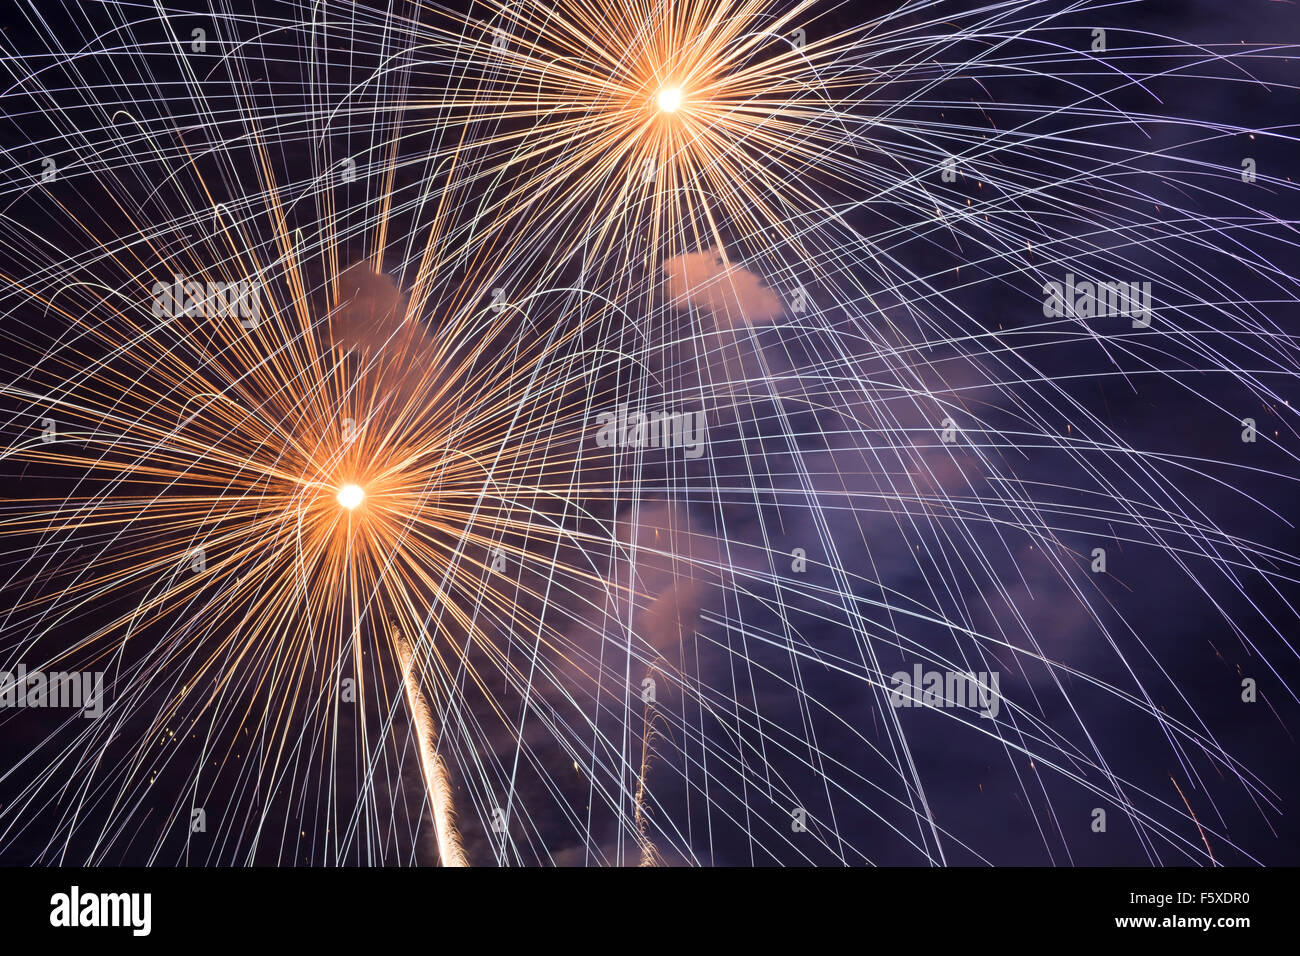 Freedom Fireworks display performed at Redding Convention Center in Redding, CA on 4th of July - Stock Image